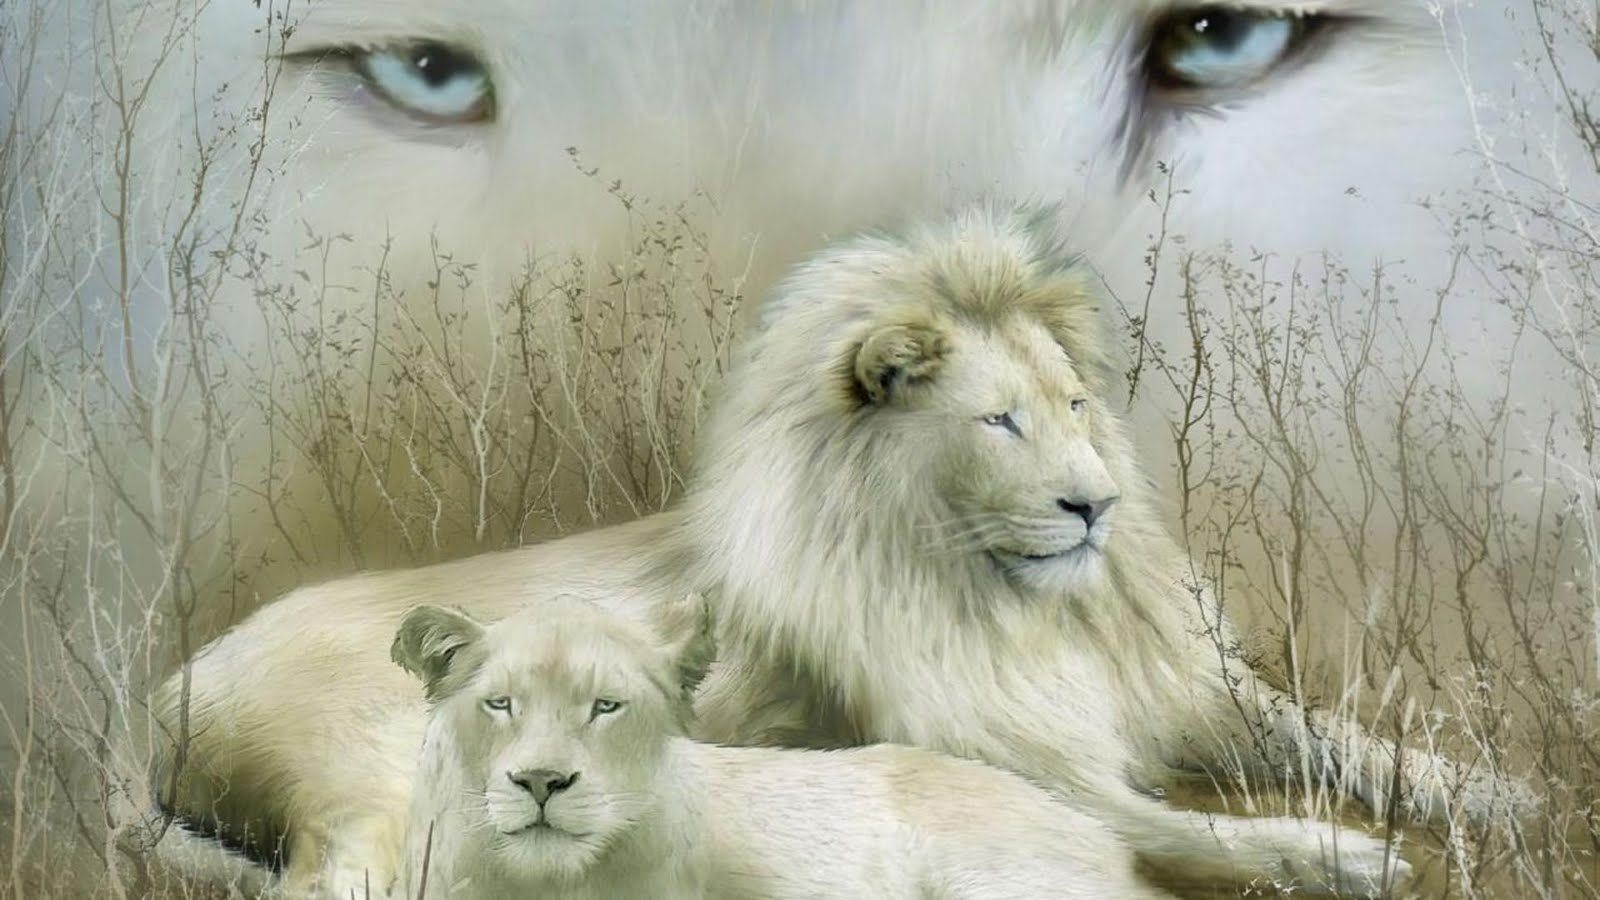 White Lions Wallpapers